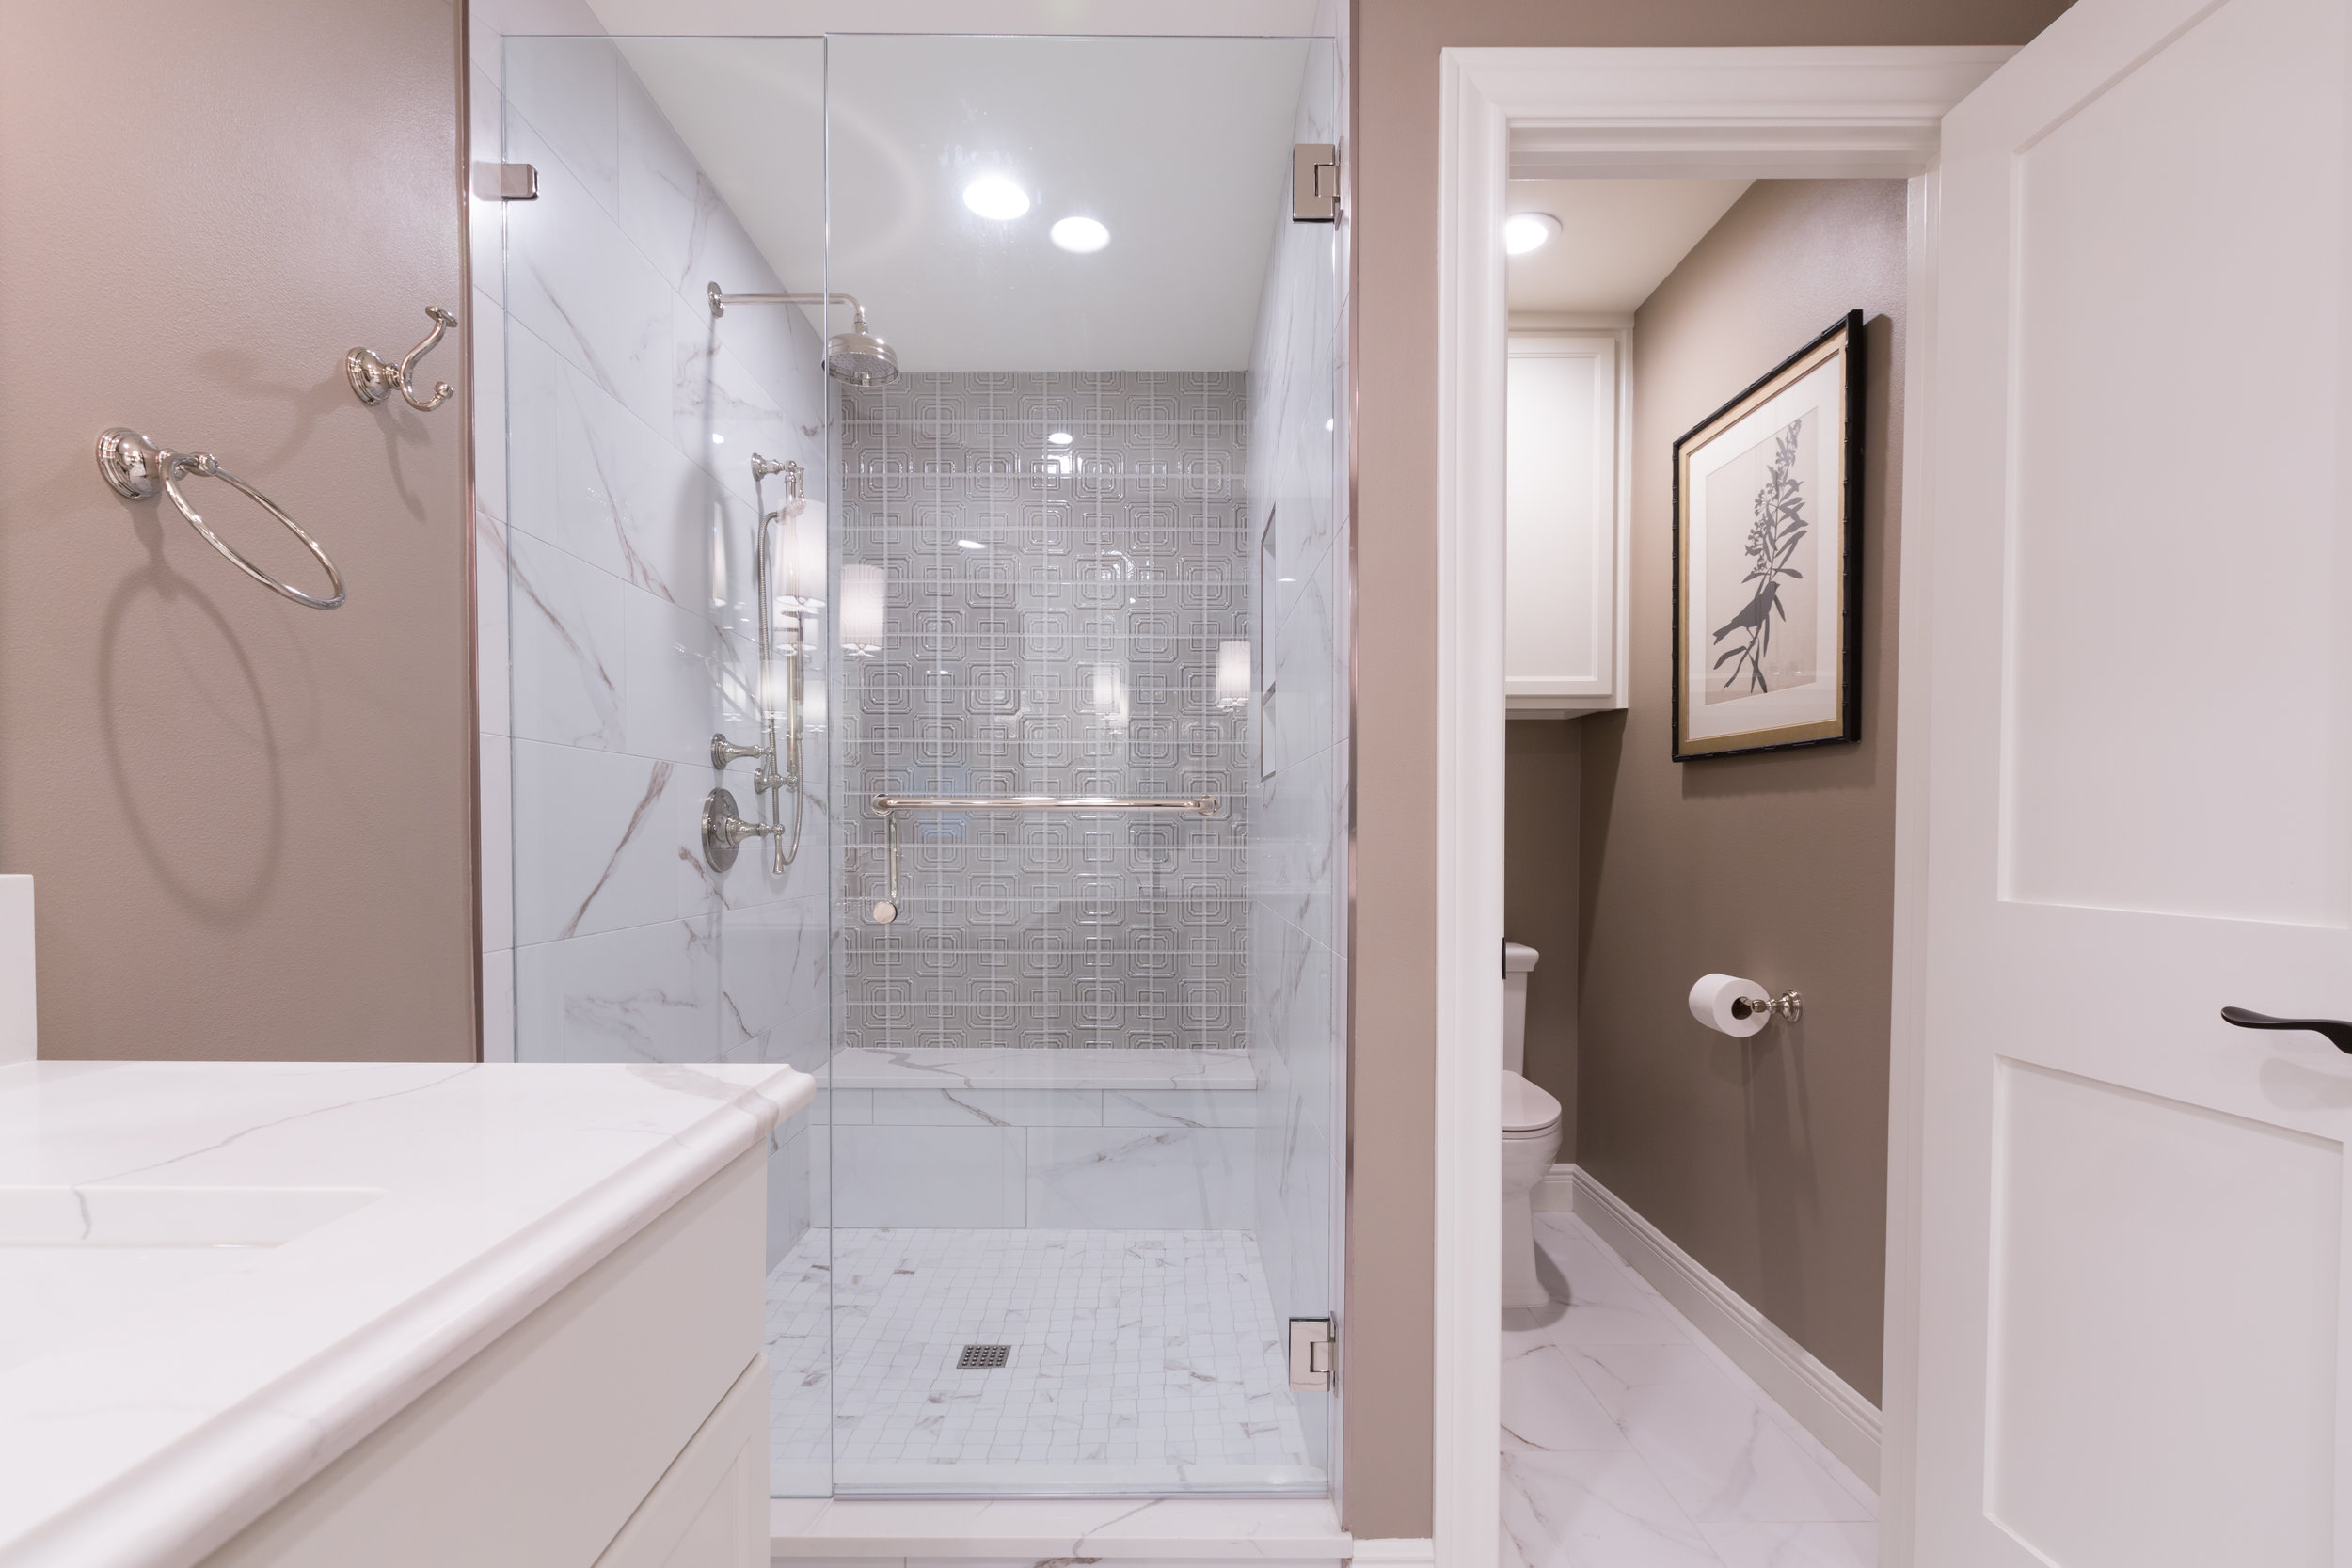 Remodeled austin condo bathroom featuring handmade shower tile